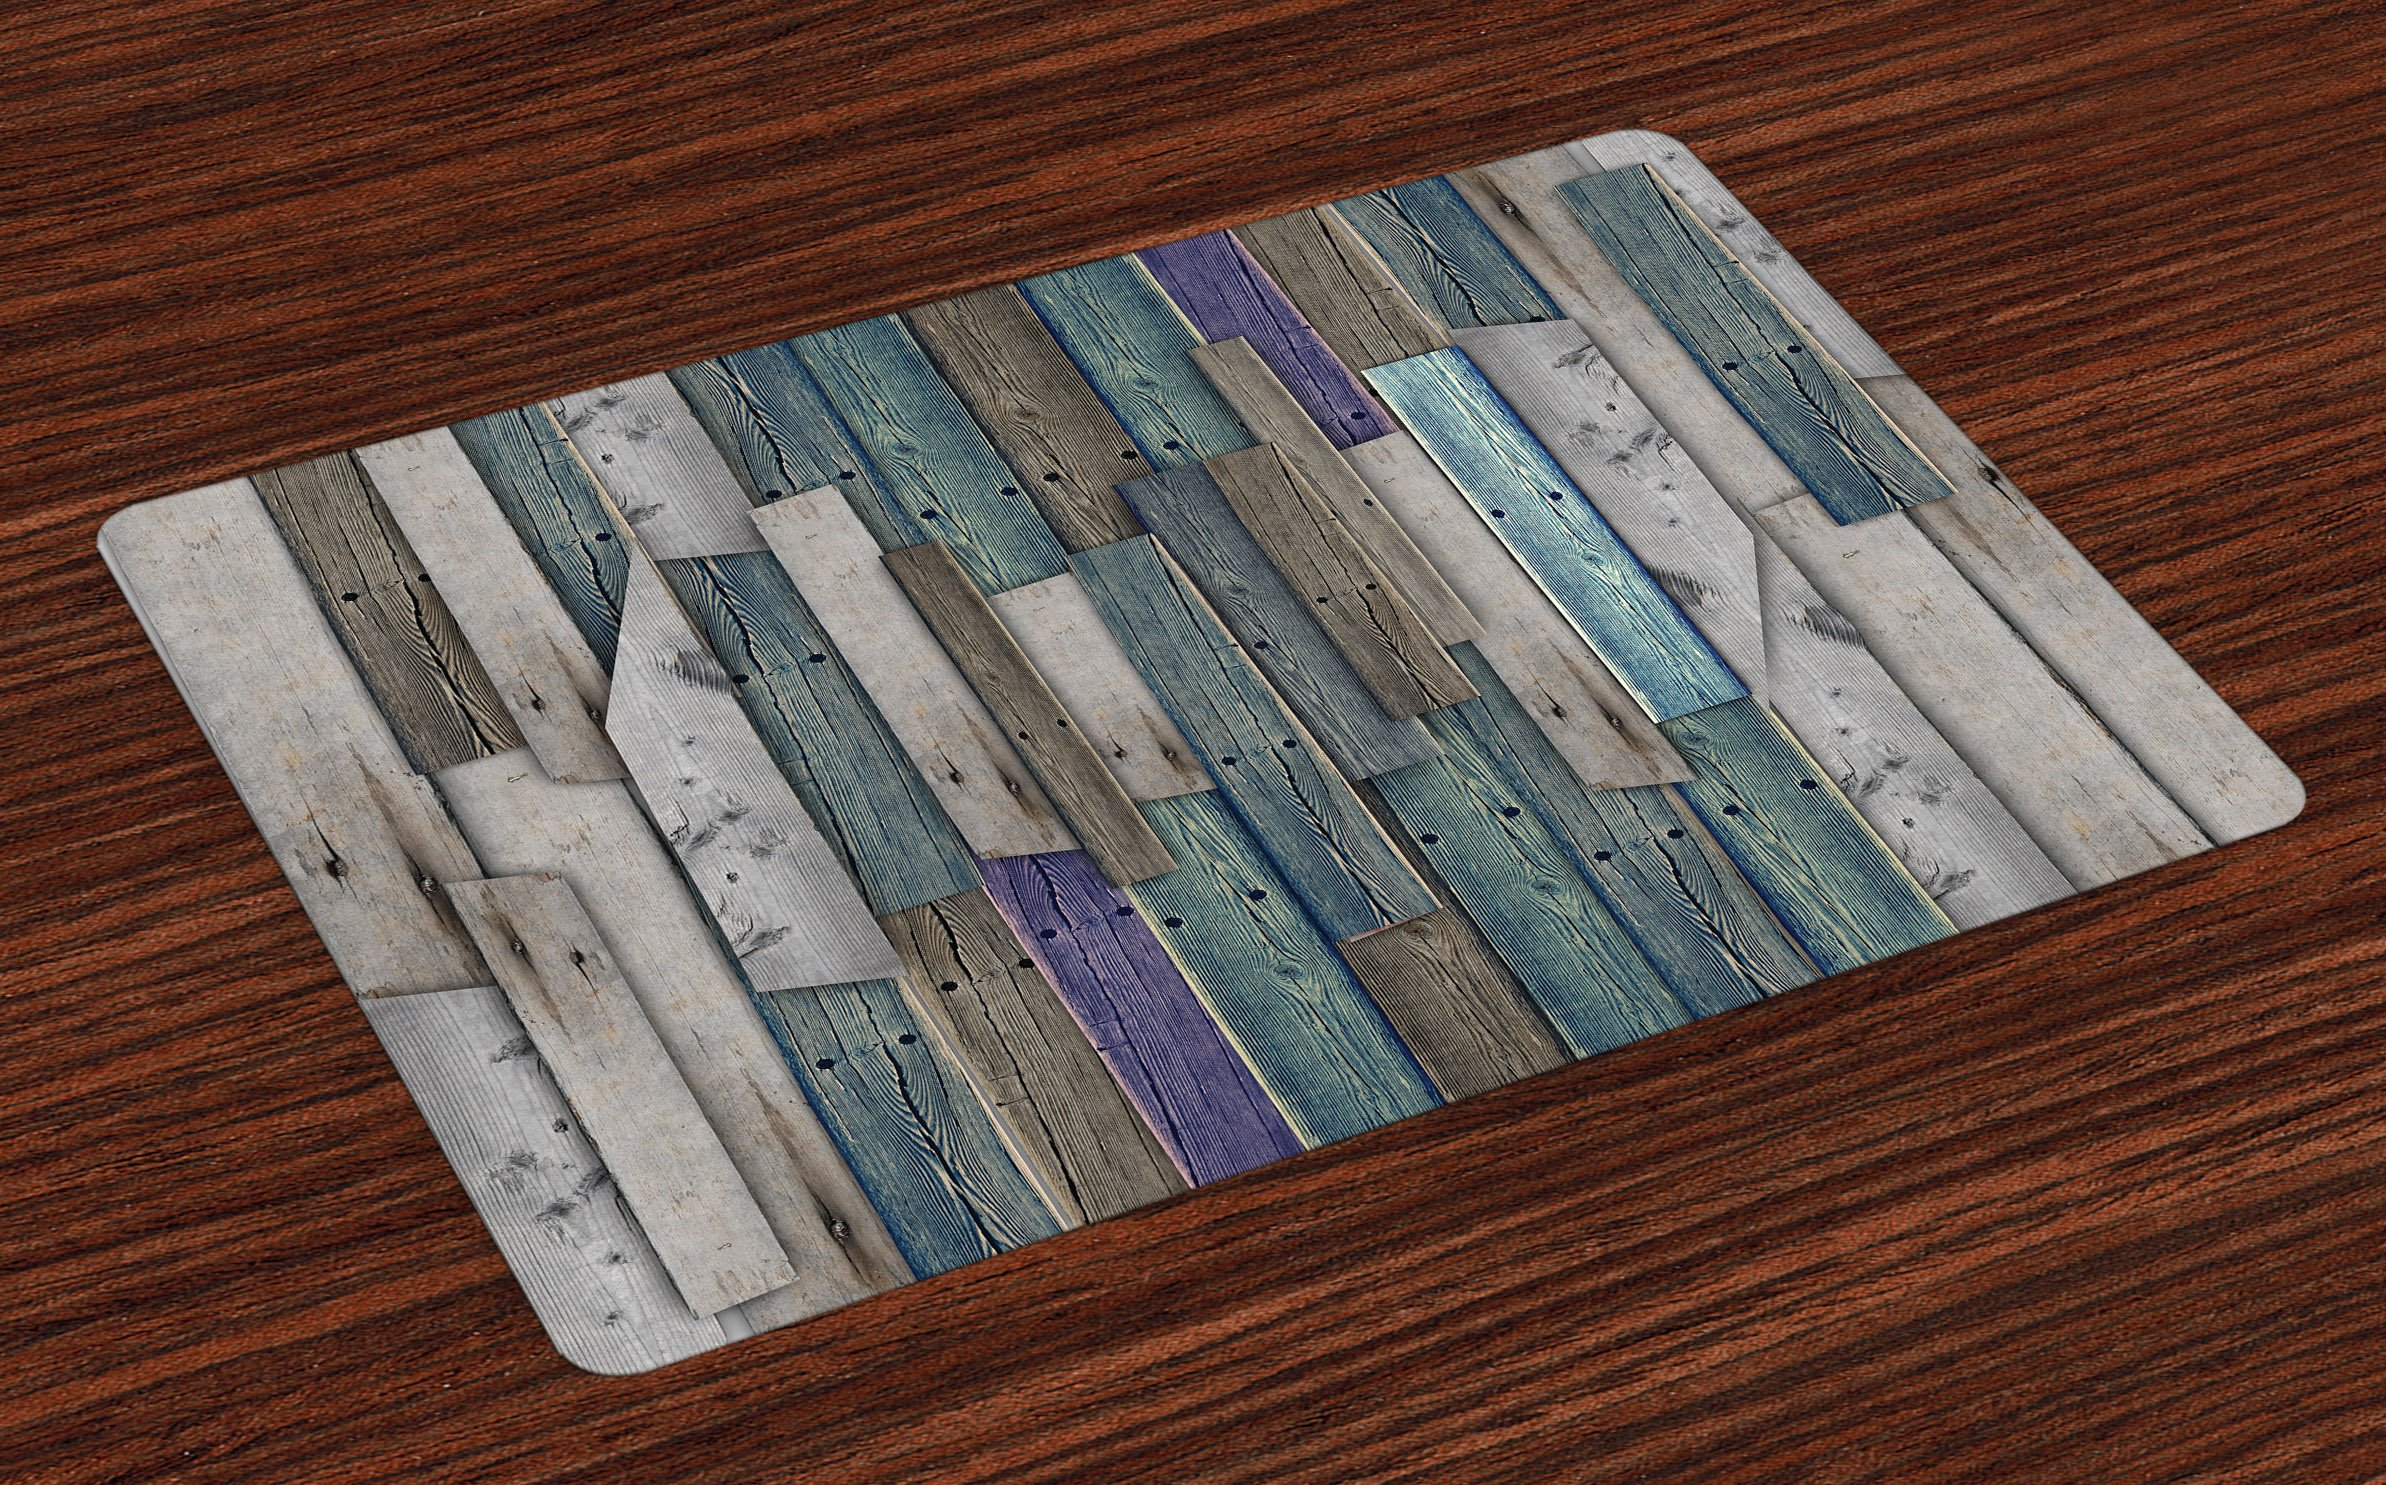 Ambesonne Rustic Place Mats, Image of Blue Grey Grunge Wood Planks Barn House Door Nails Country Life Theme Print, Washable Fabric Placemats for Dining Room Kitchen Table Decor, Gray Blue